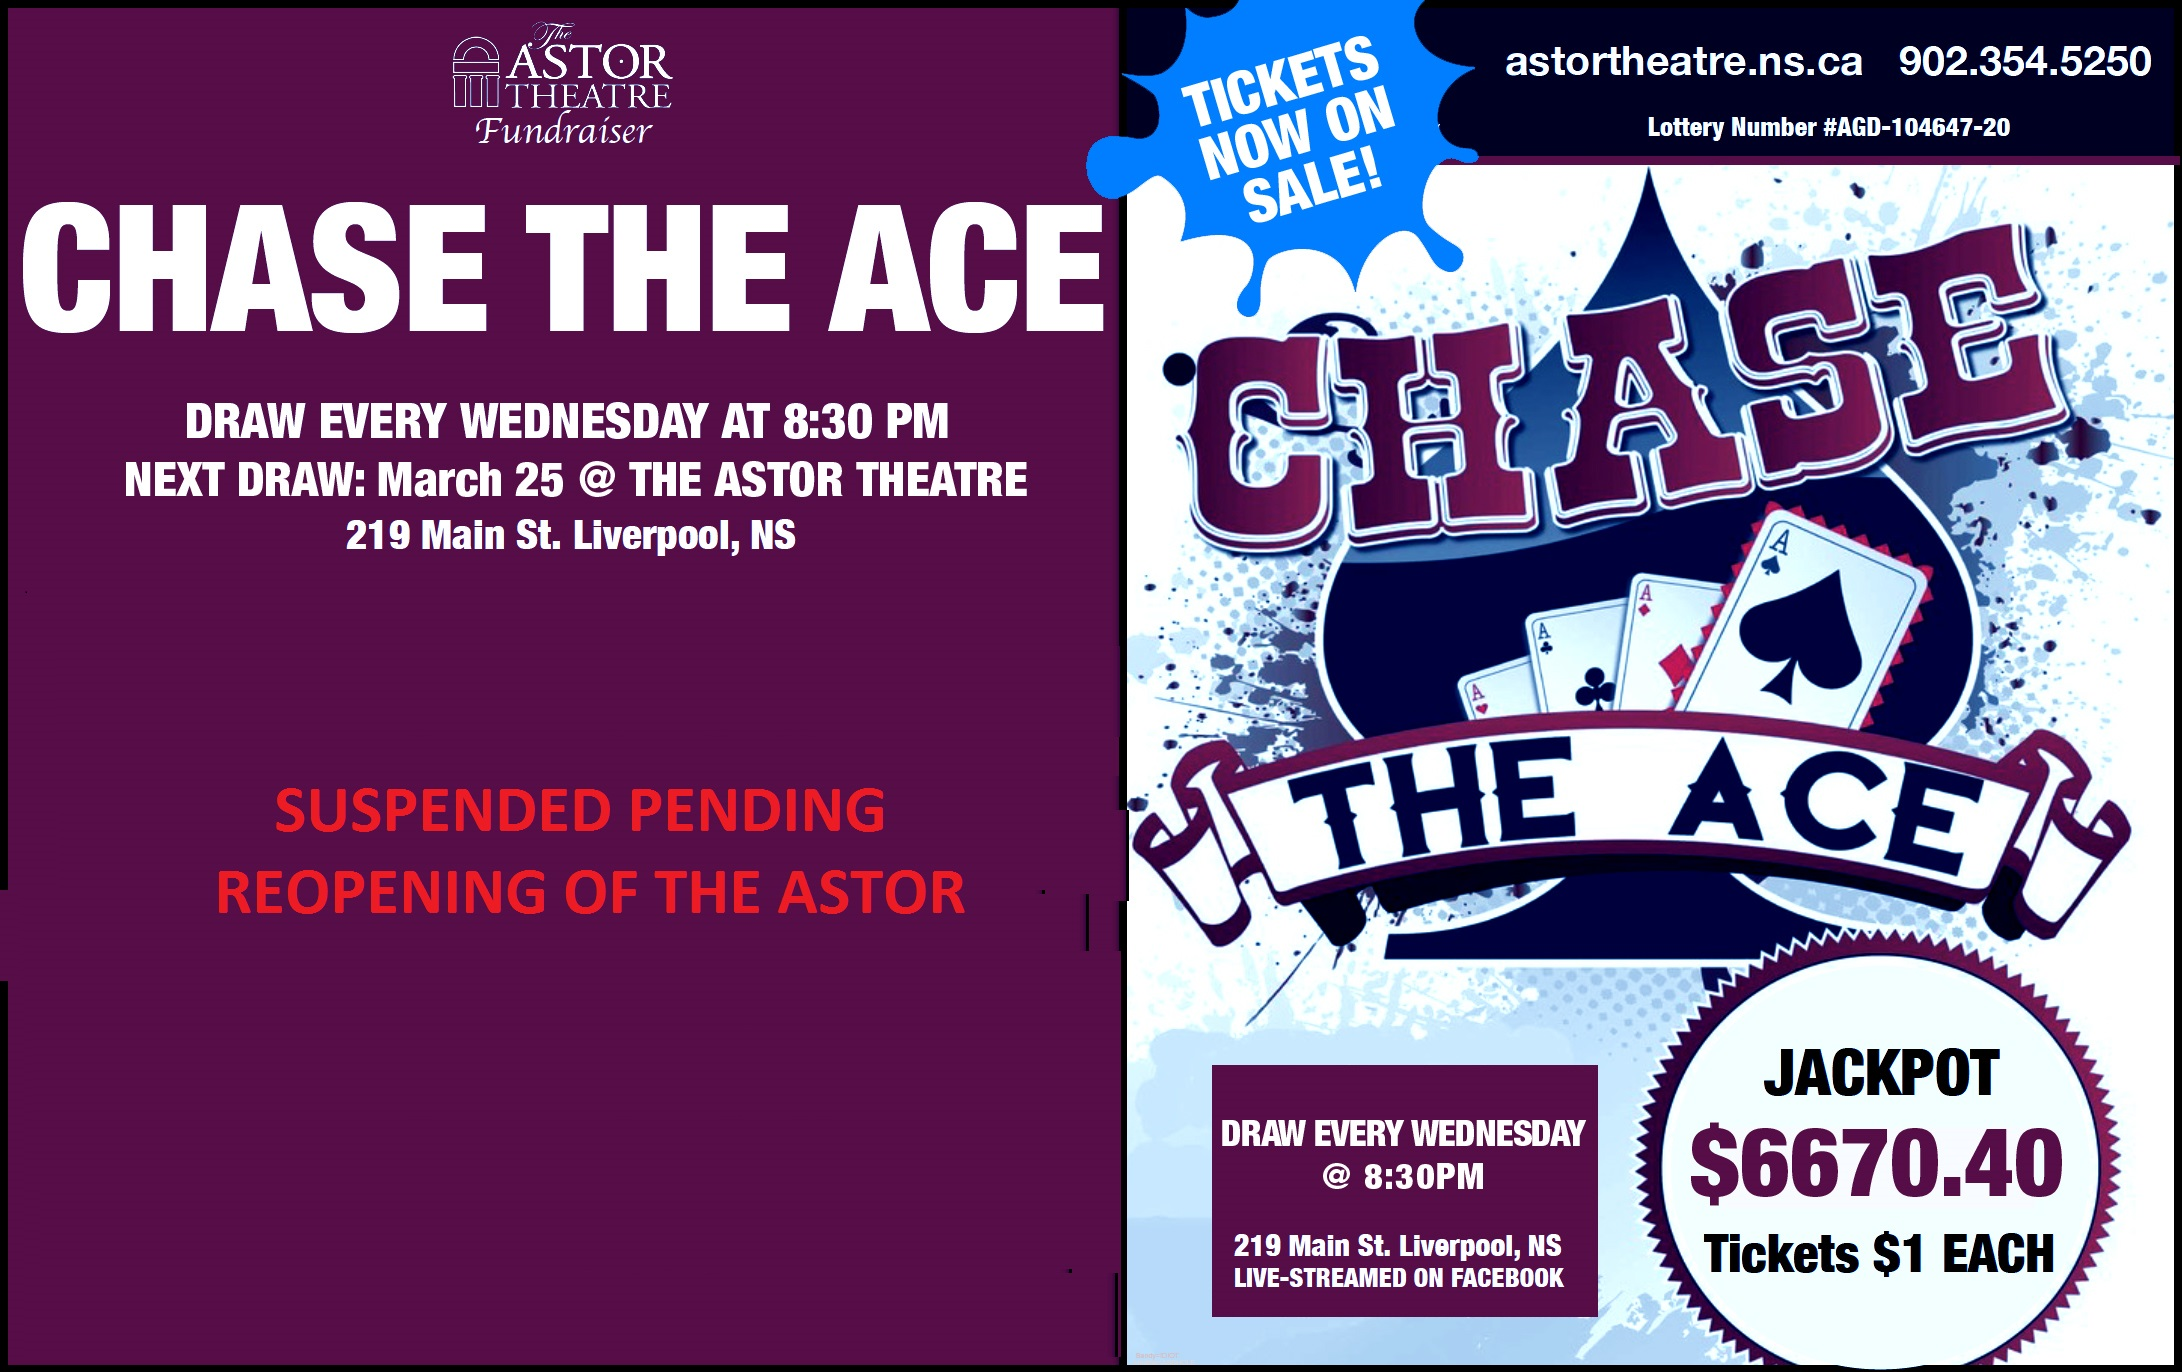 POSTPONED PENDING REOPENING OF ASTOR - Chase The Ace (Round 4) @ Astor Theatre(lobby)